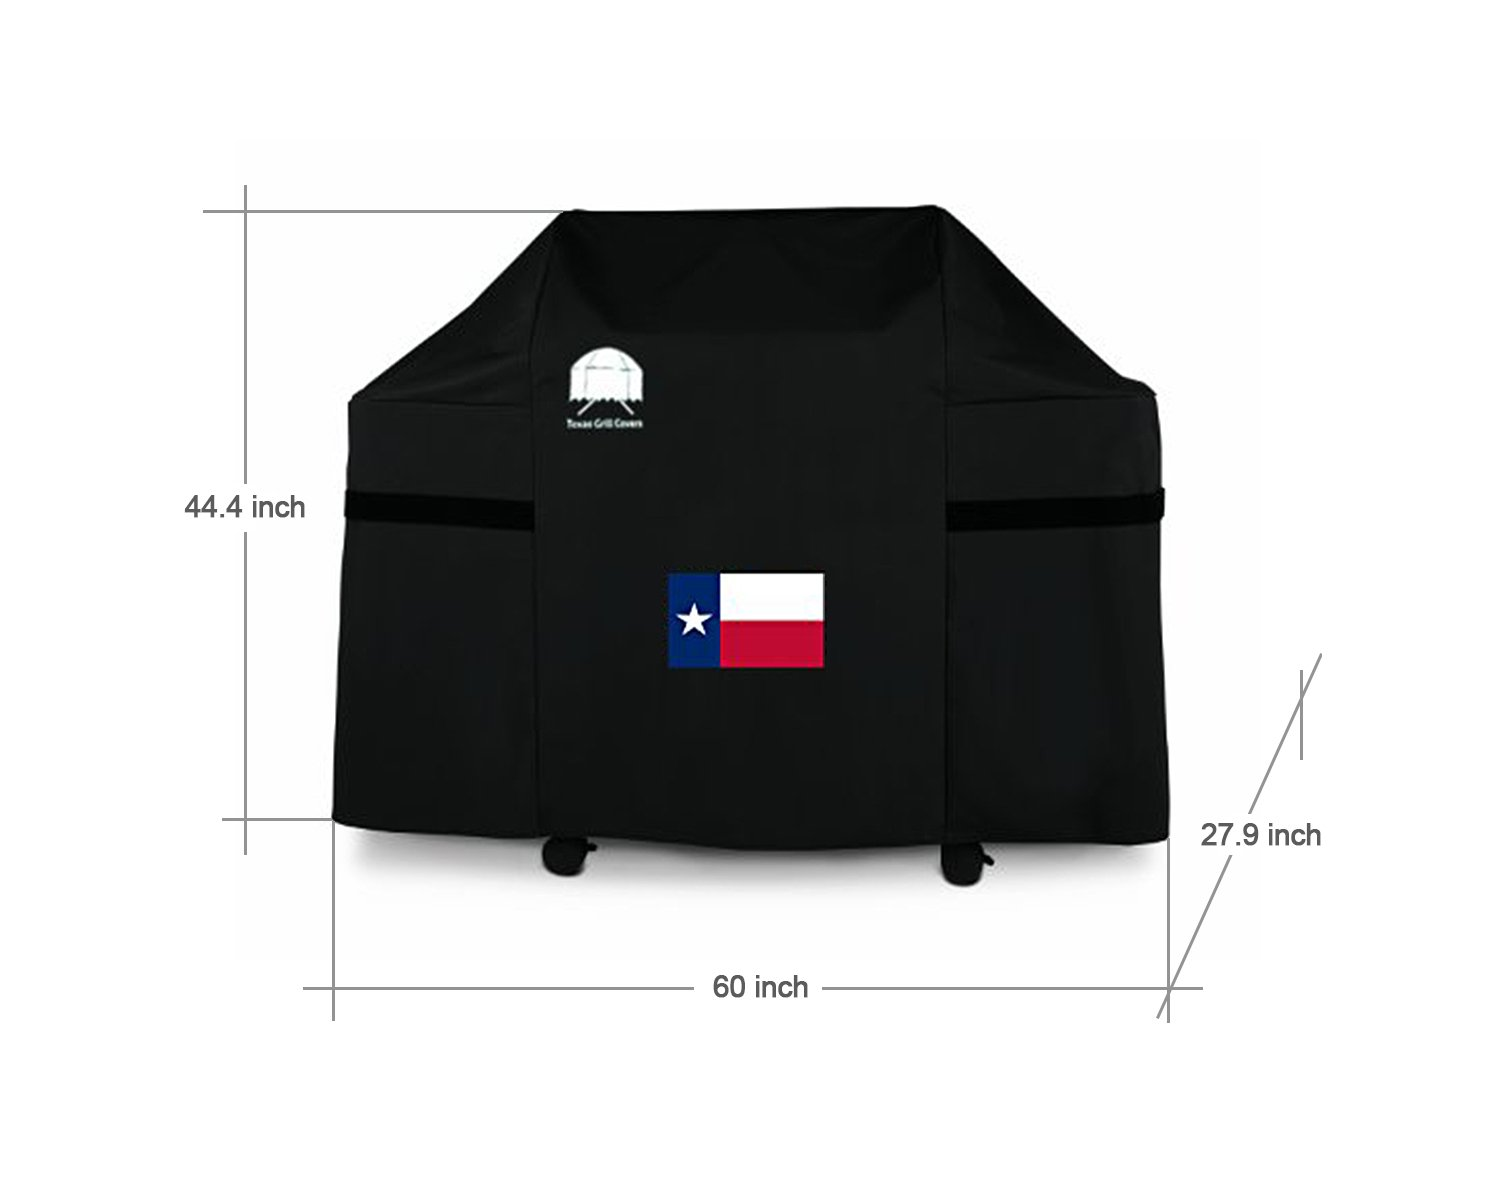 Texas Grill Covers 7553 | 7107 Premium Cover for Weber Genesis E and S Series Gas Grills with USA Flag Design Including Brush and Tongs (with Texas State Flag) by Texas Grill Covers